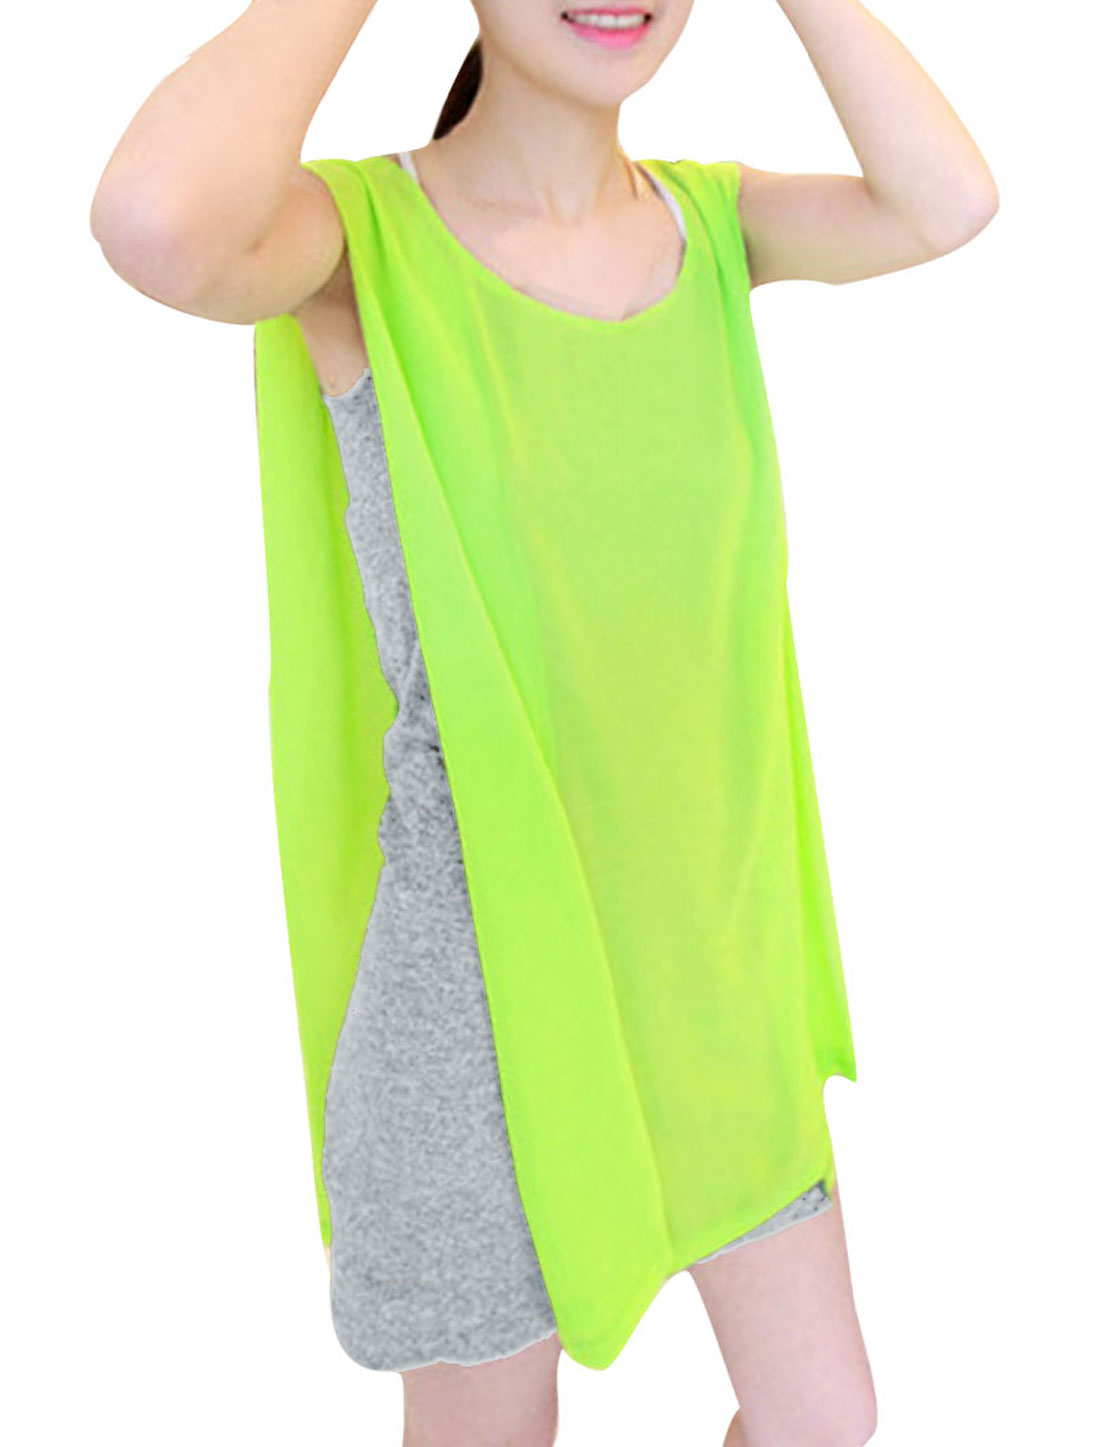 Women Two-Color Design Lime Gray Chiffon Panel Design Tunic Tops XS